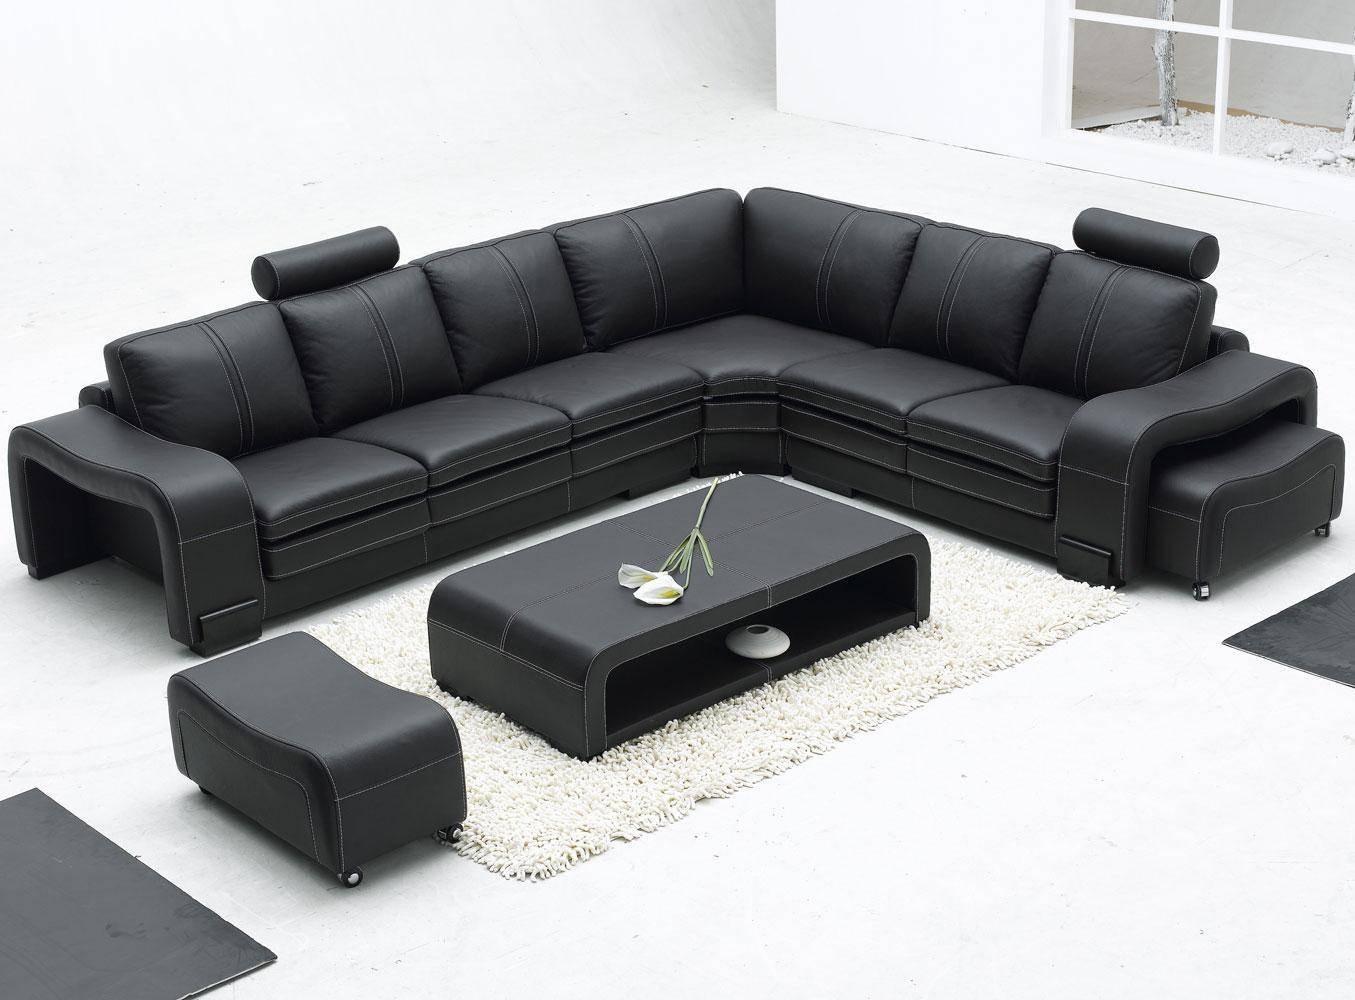 Furniture: Modern Bonded Leather Sectional Sofa In Black And in Black Modern Sectional Sofas (Image 3 of 15)